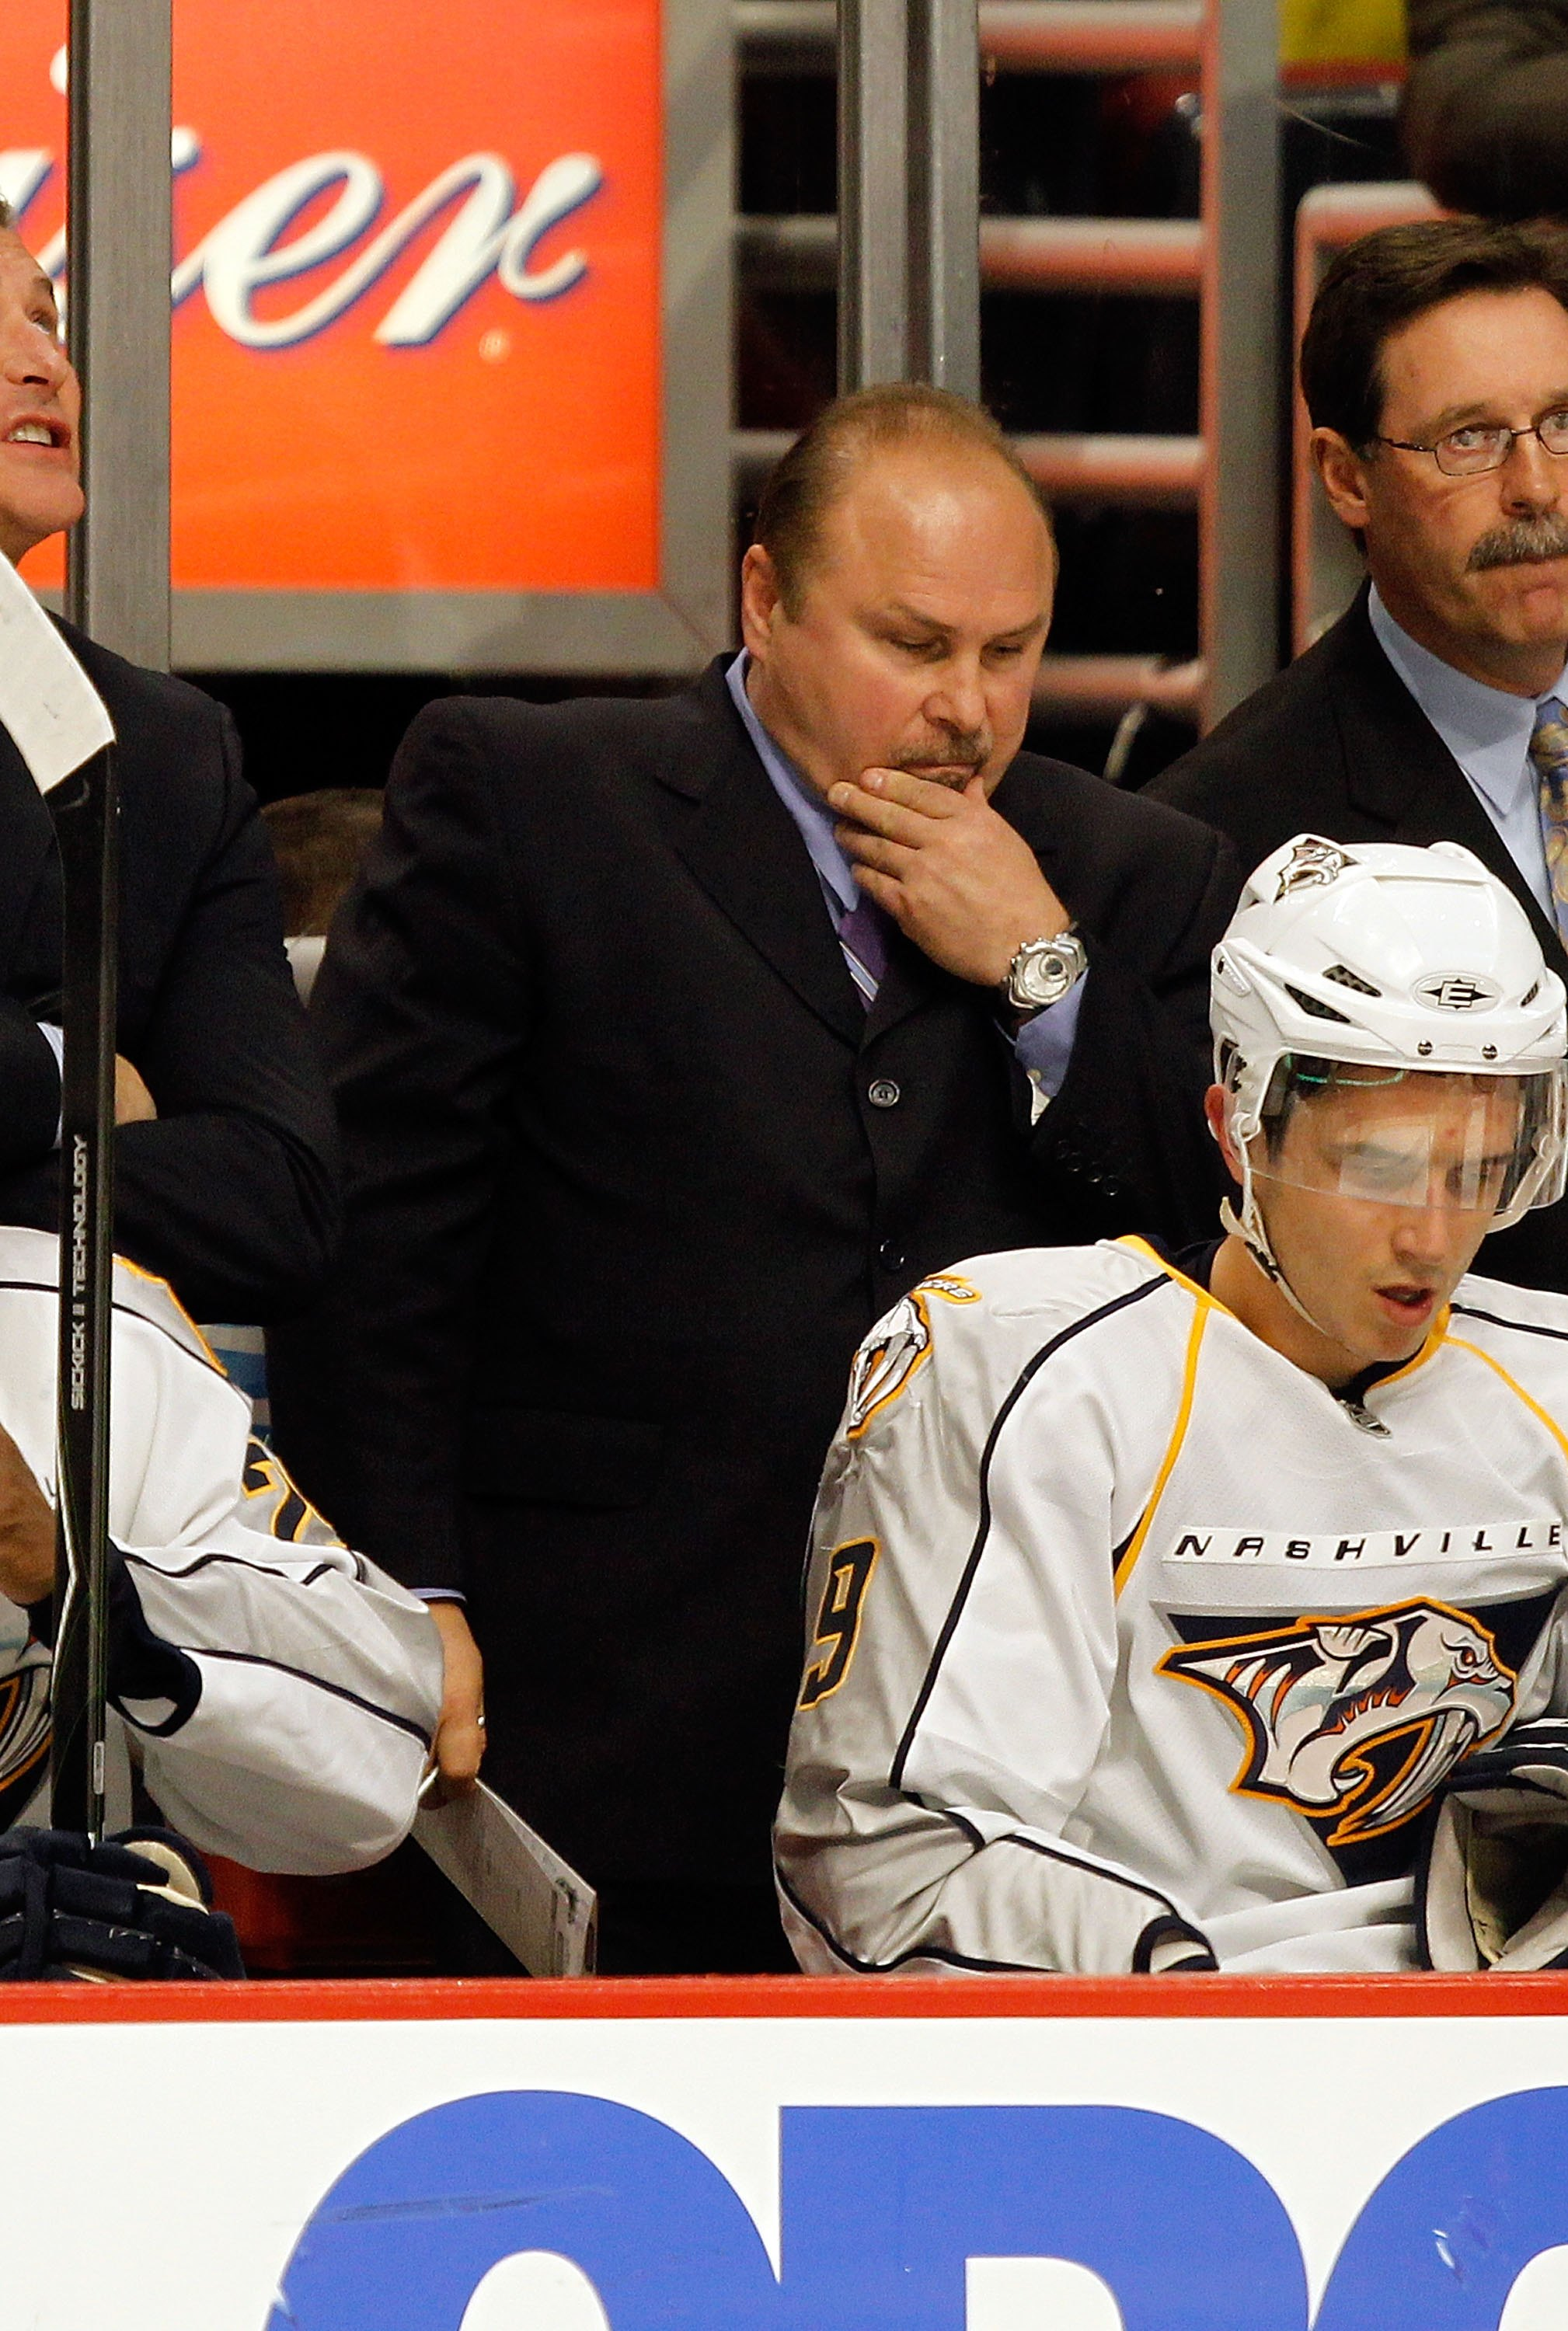 The only coach the Preds have had